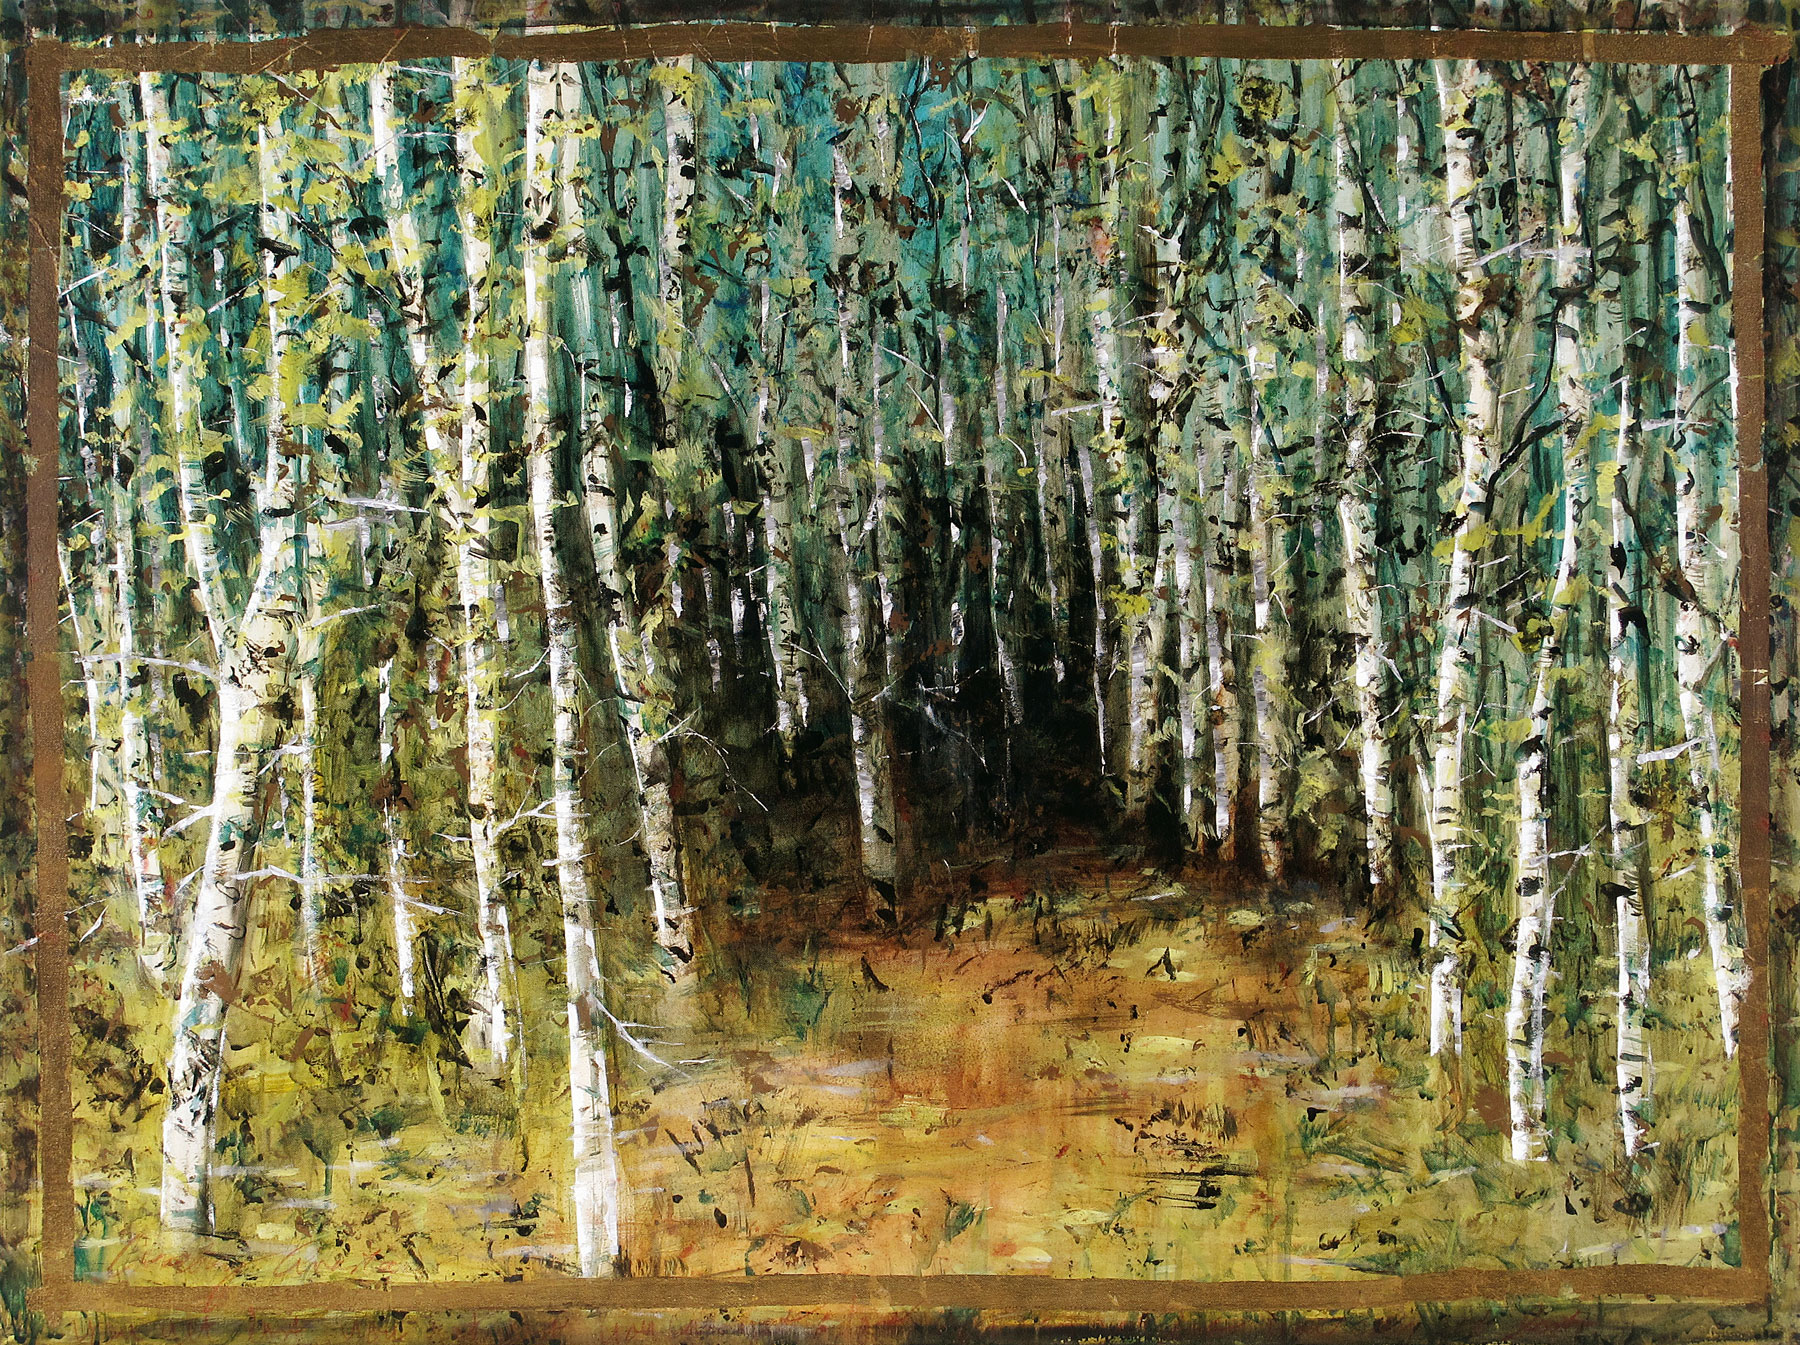 birch-path-36x48-bourne02